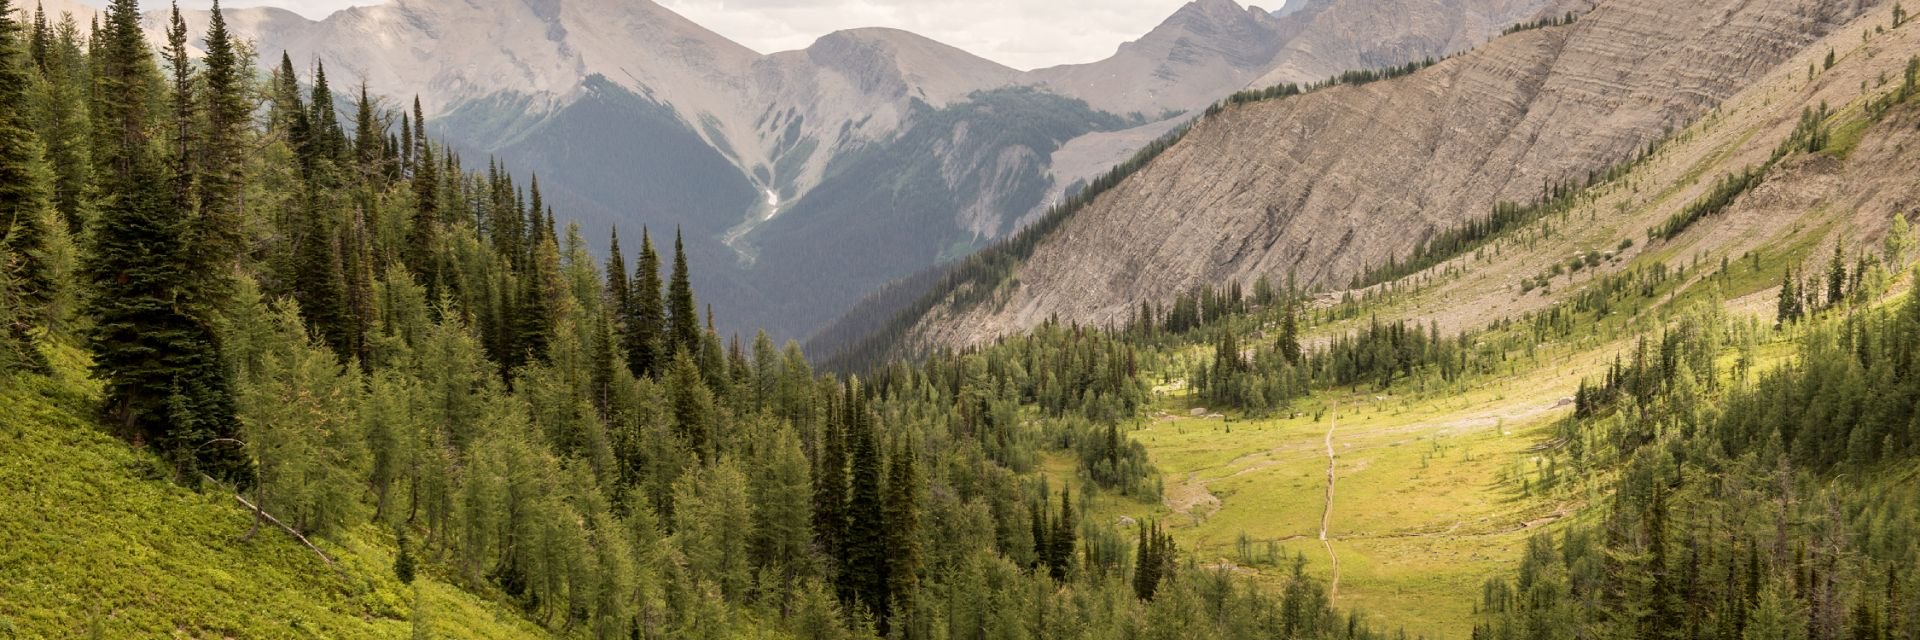 Hikers on the Rockwall Trail in Kootenay National Park, BC.